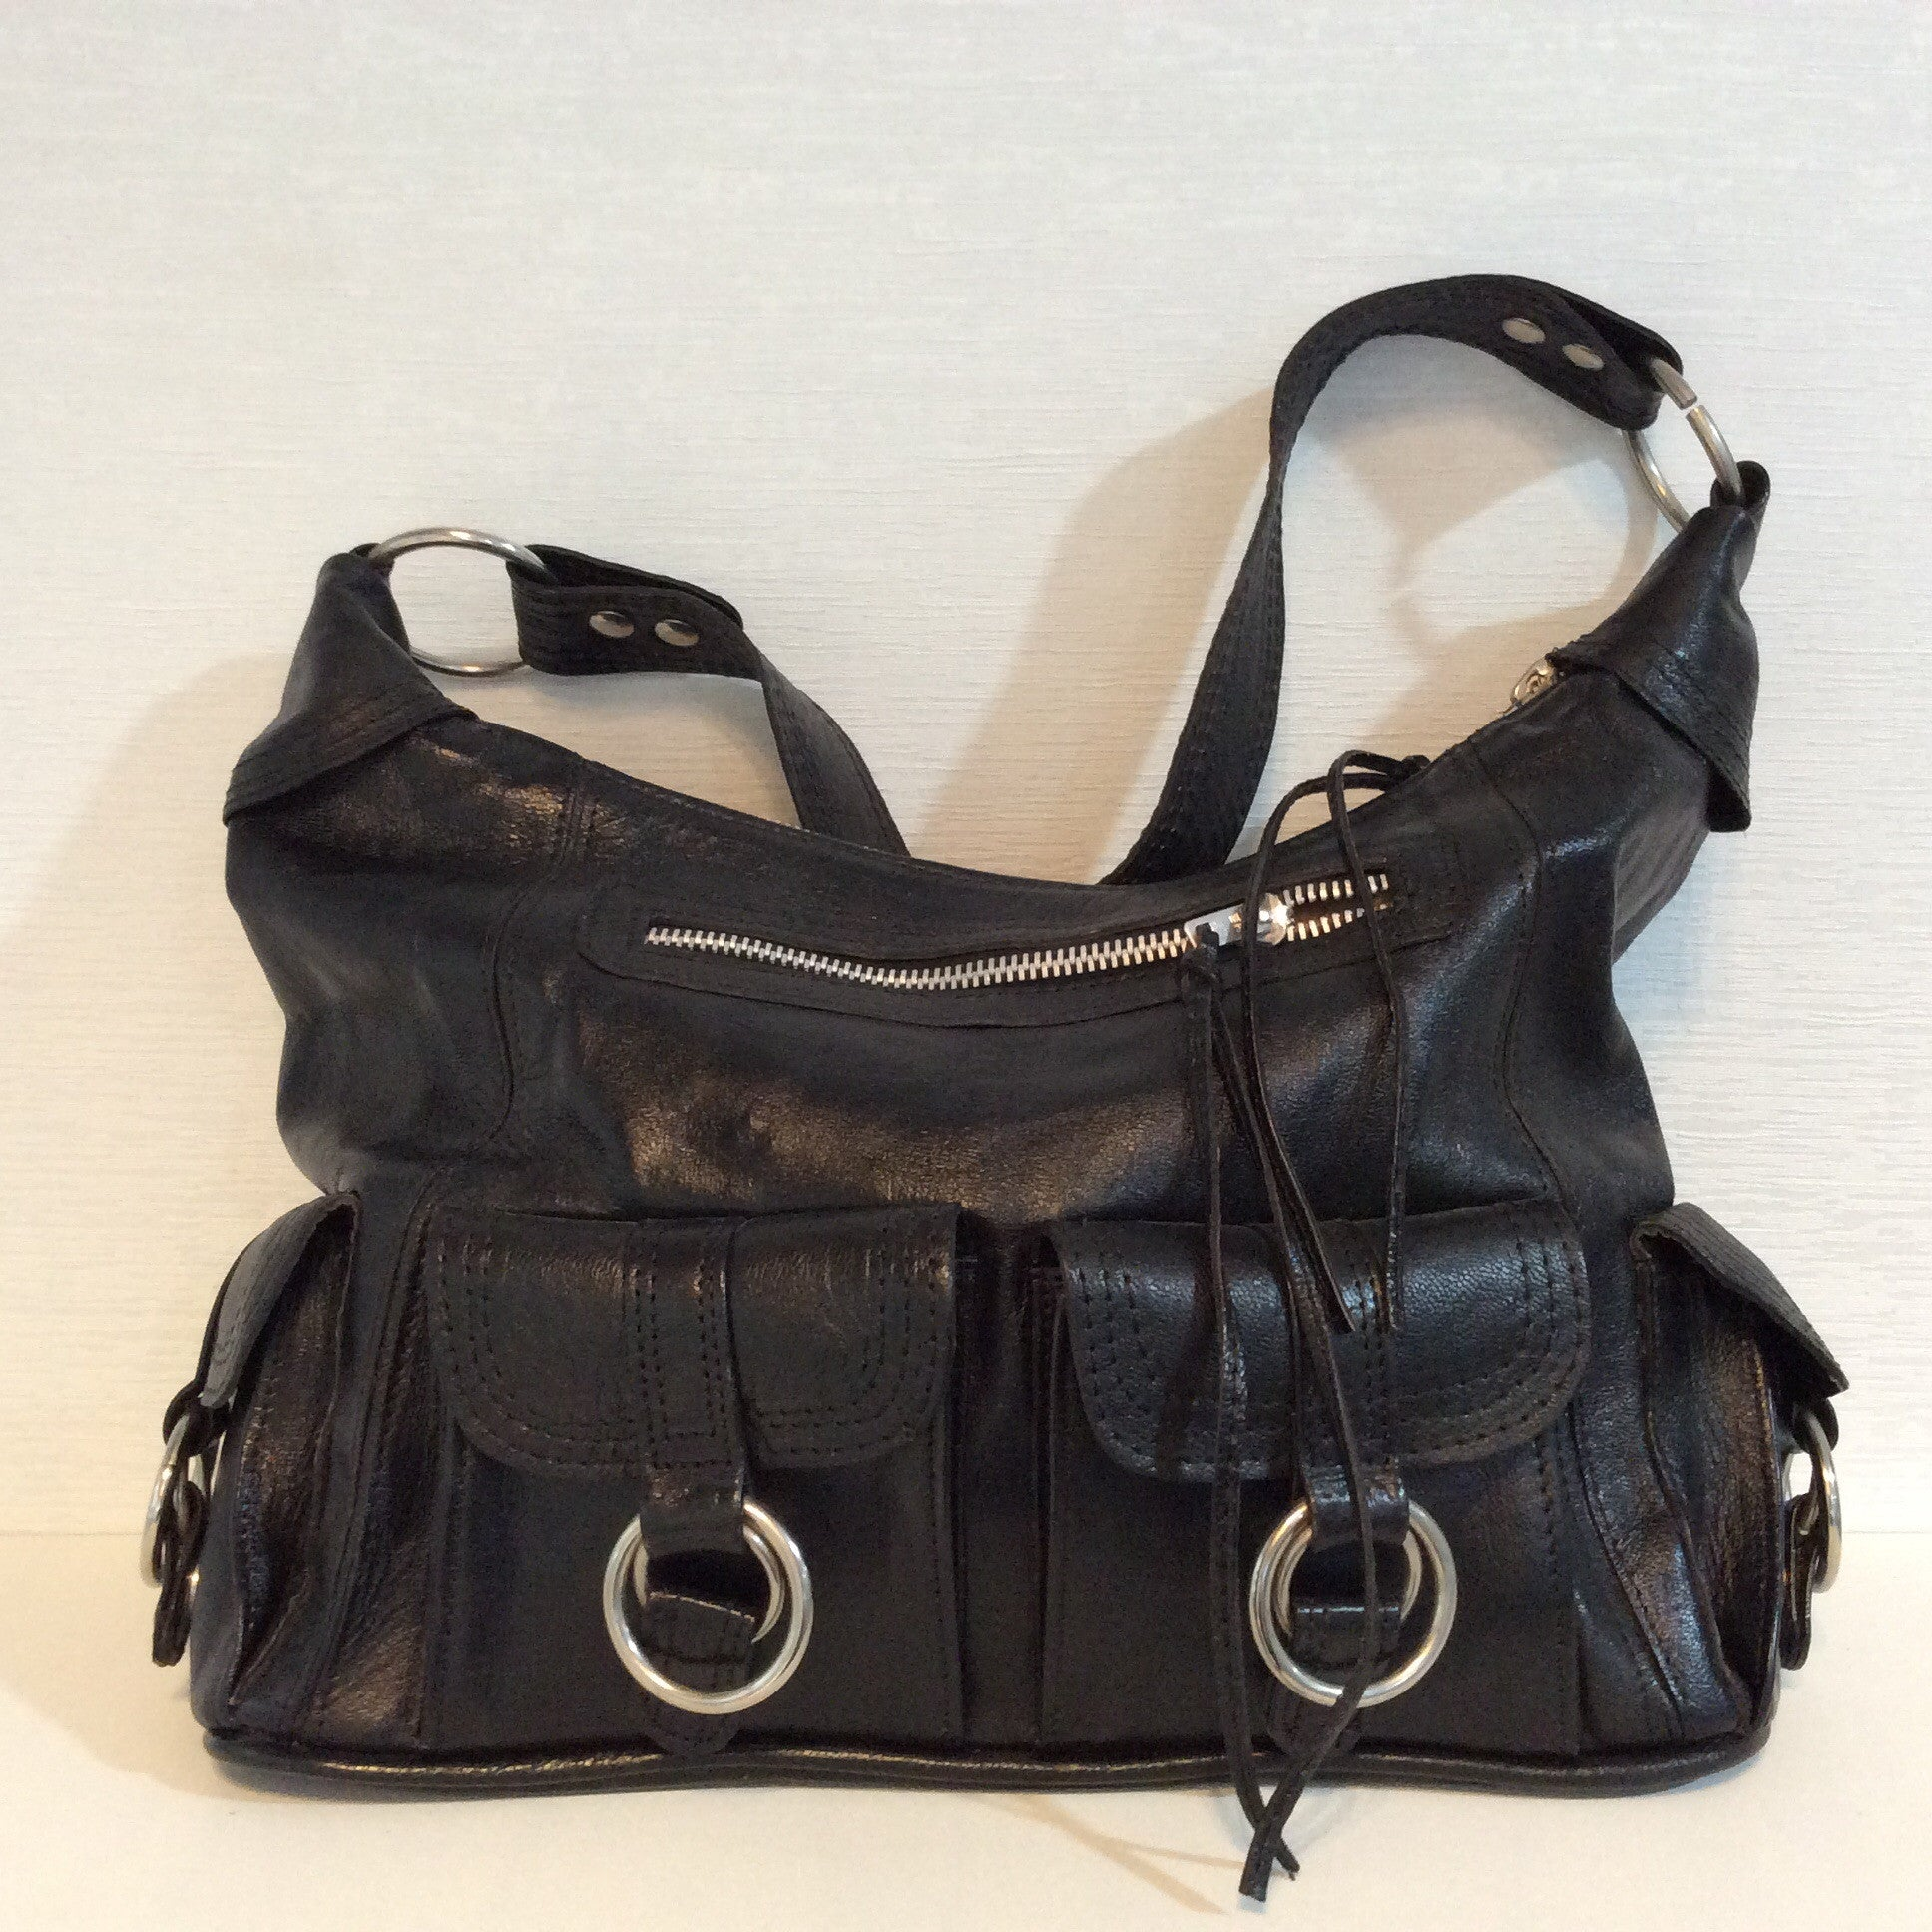 Black Moroccan Bag with Rings